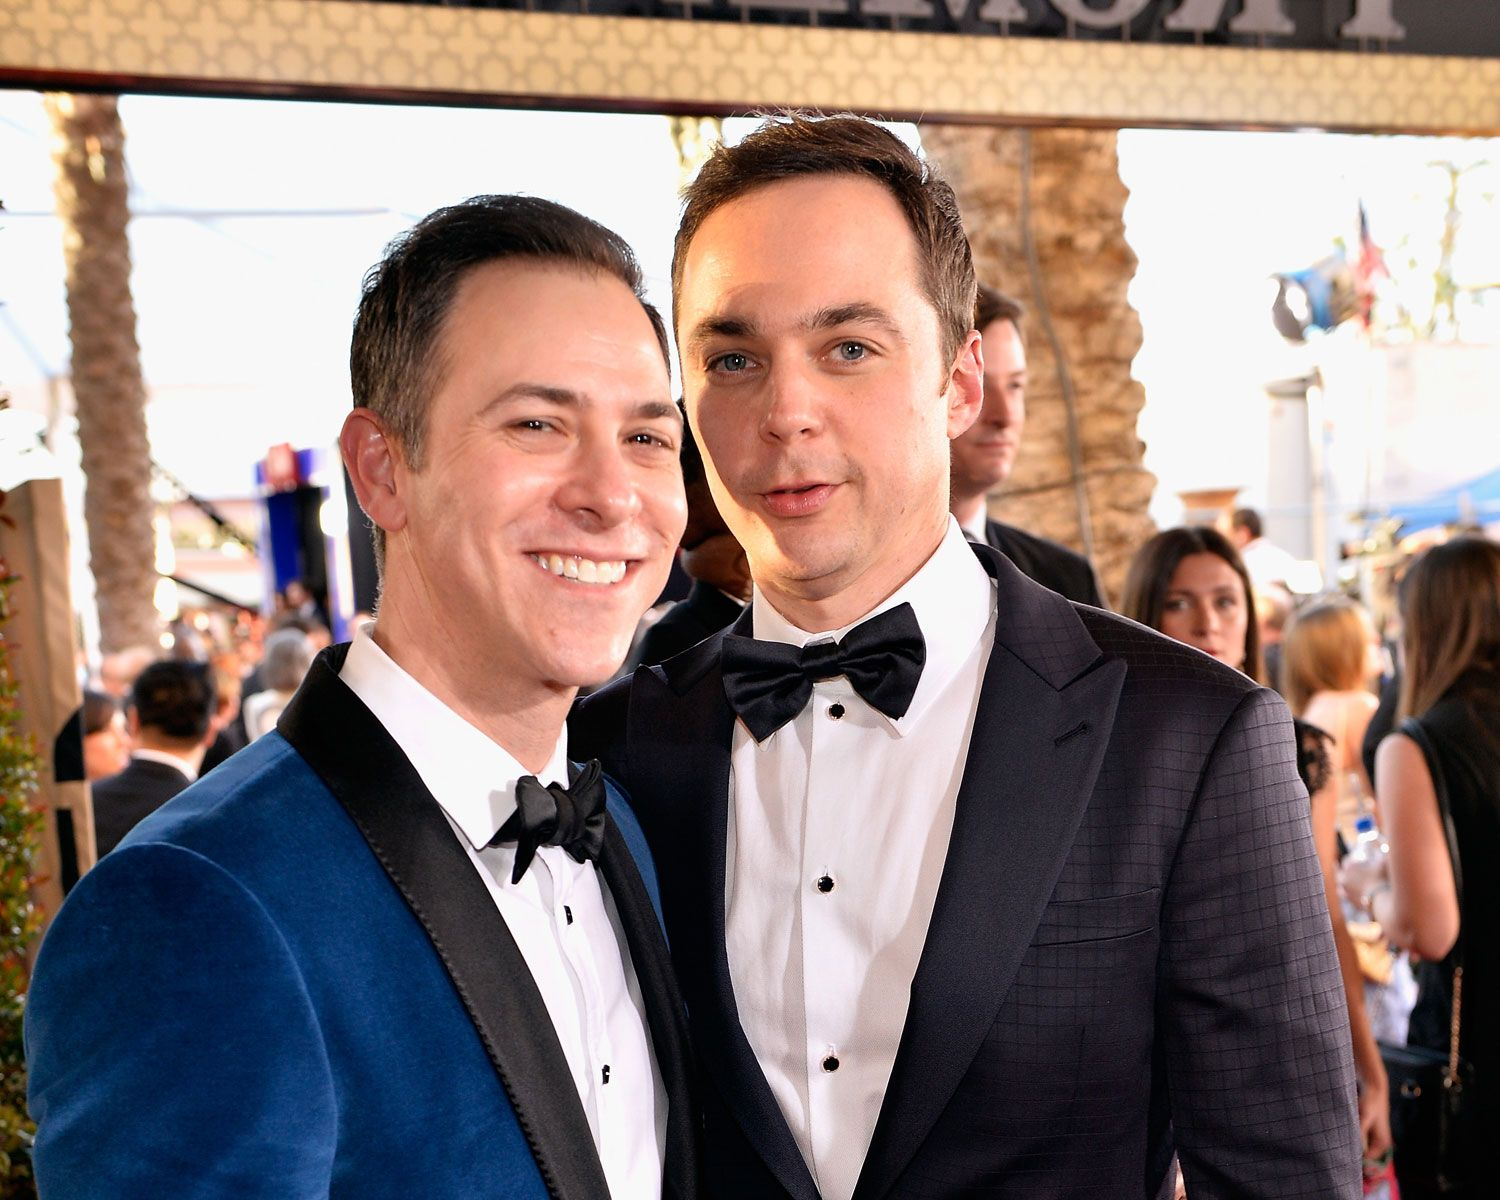 Jim Parsons Wedding Photos Are Insanely Cute See More Here Jim Parsons Celebrity Couples Cutest Couple Ever